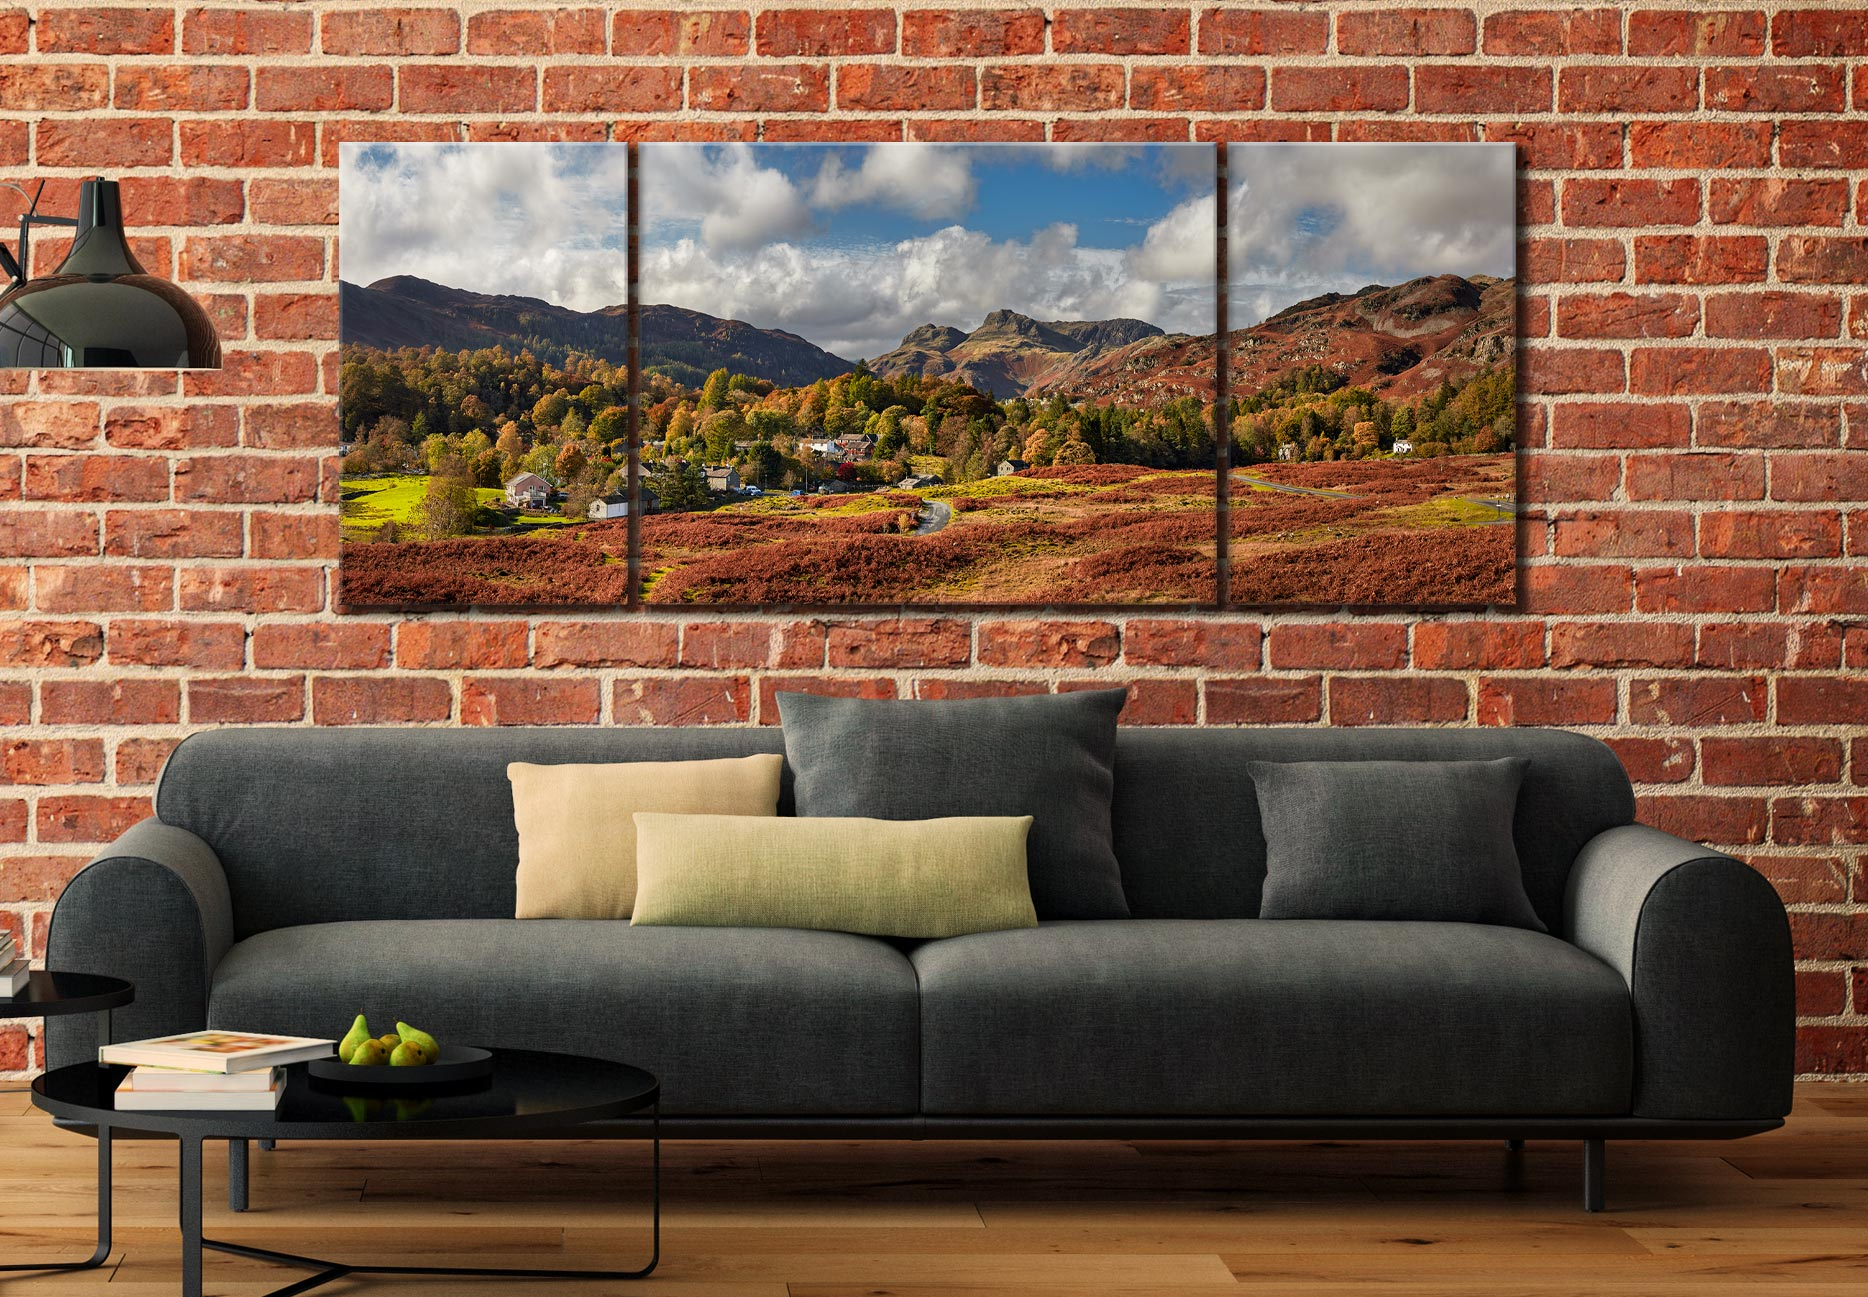 Elterwater Village - 3 Panel Wide Mid Canvas on Wall